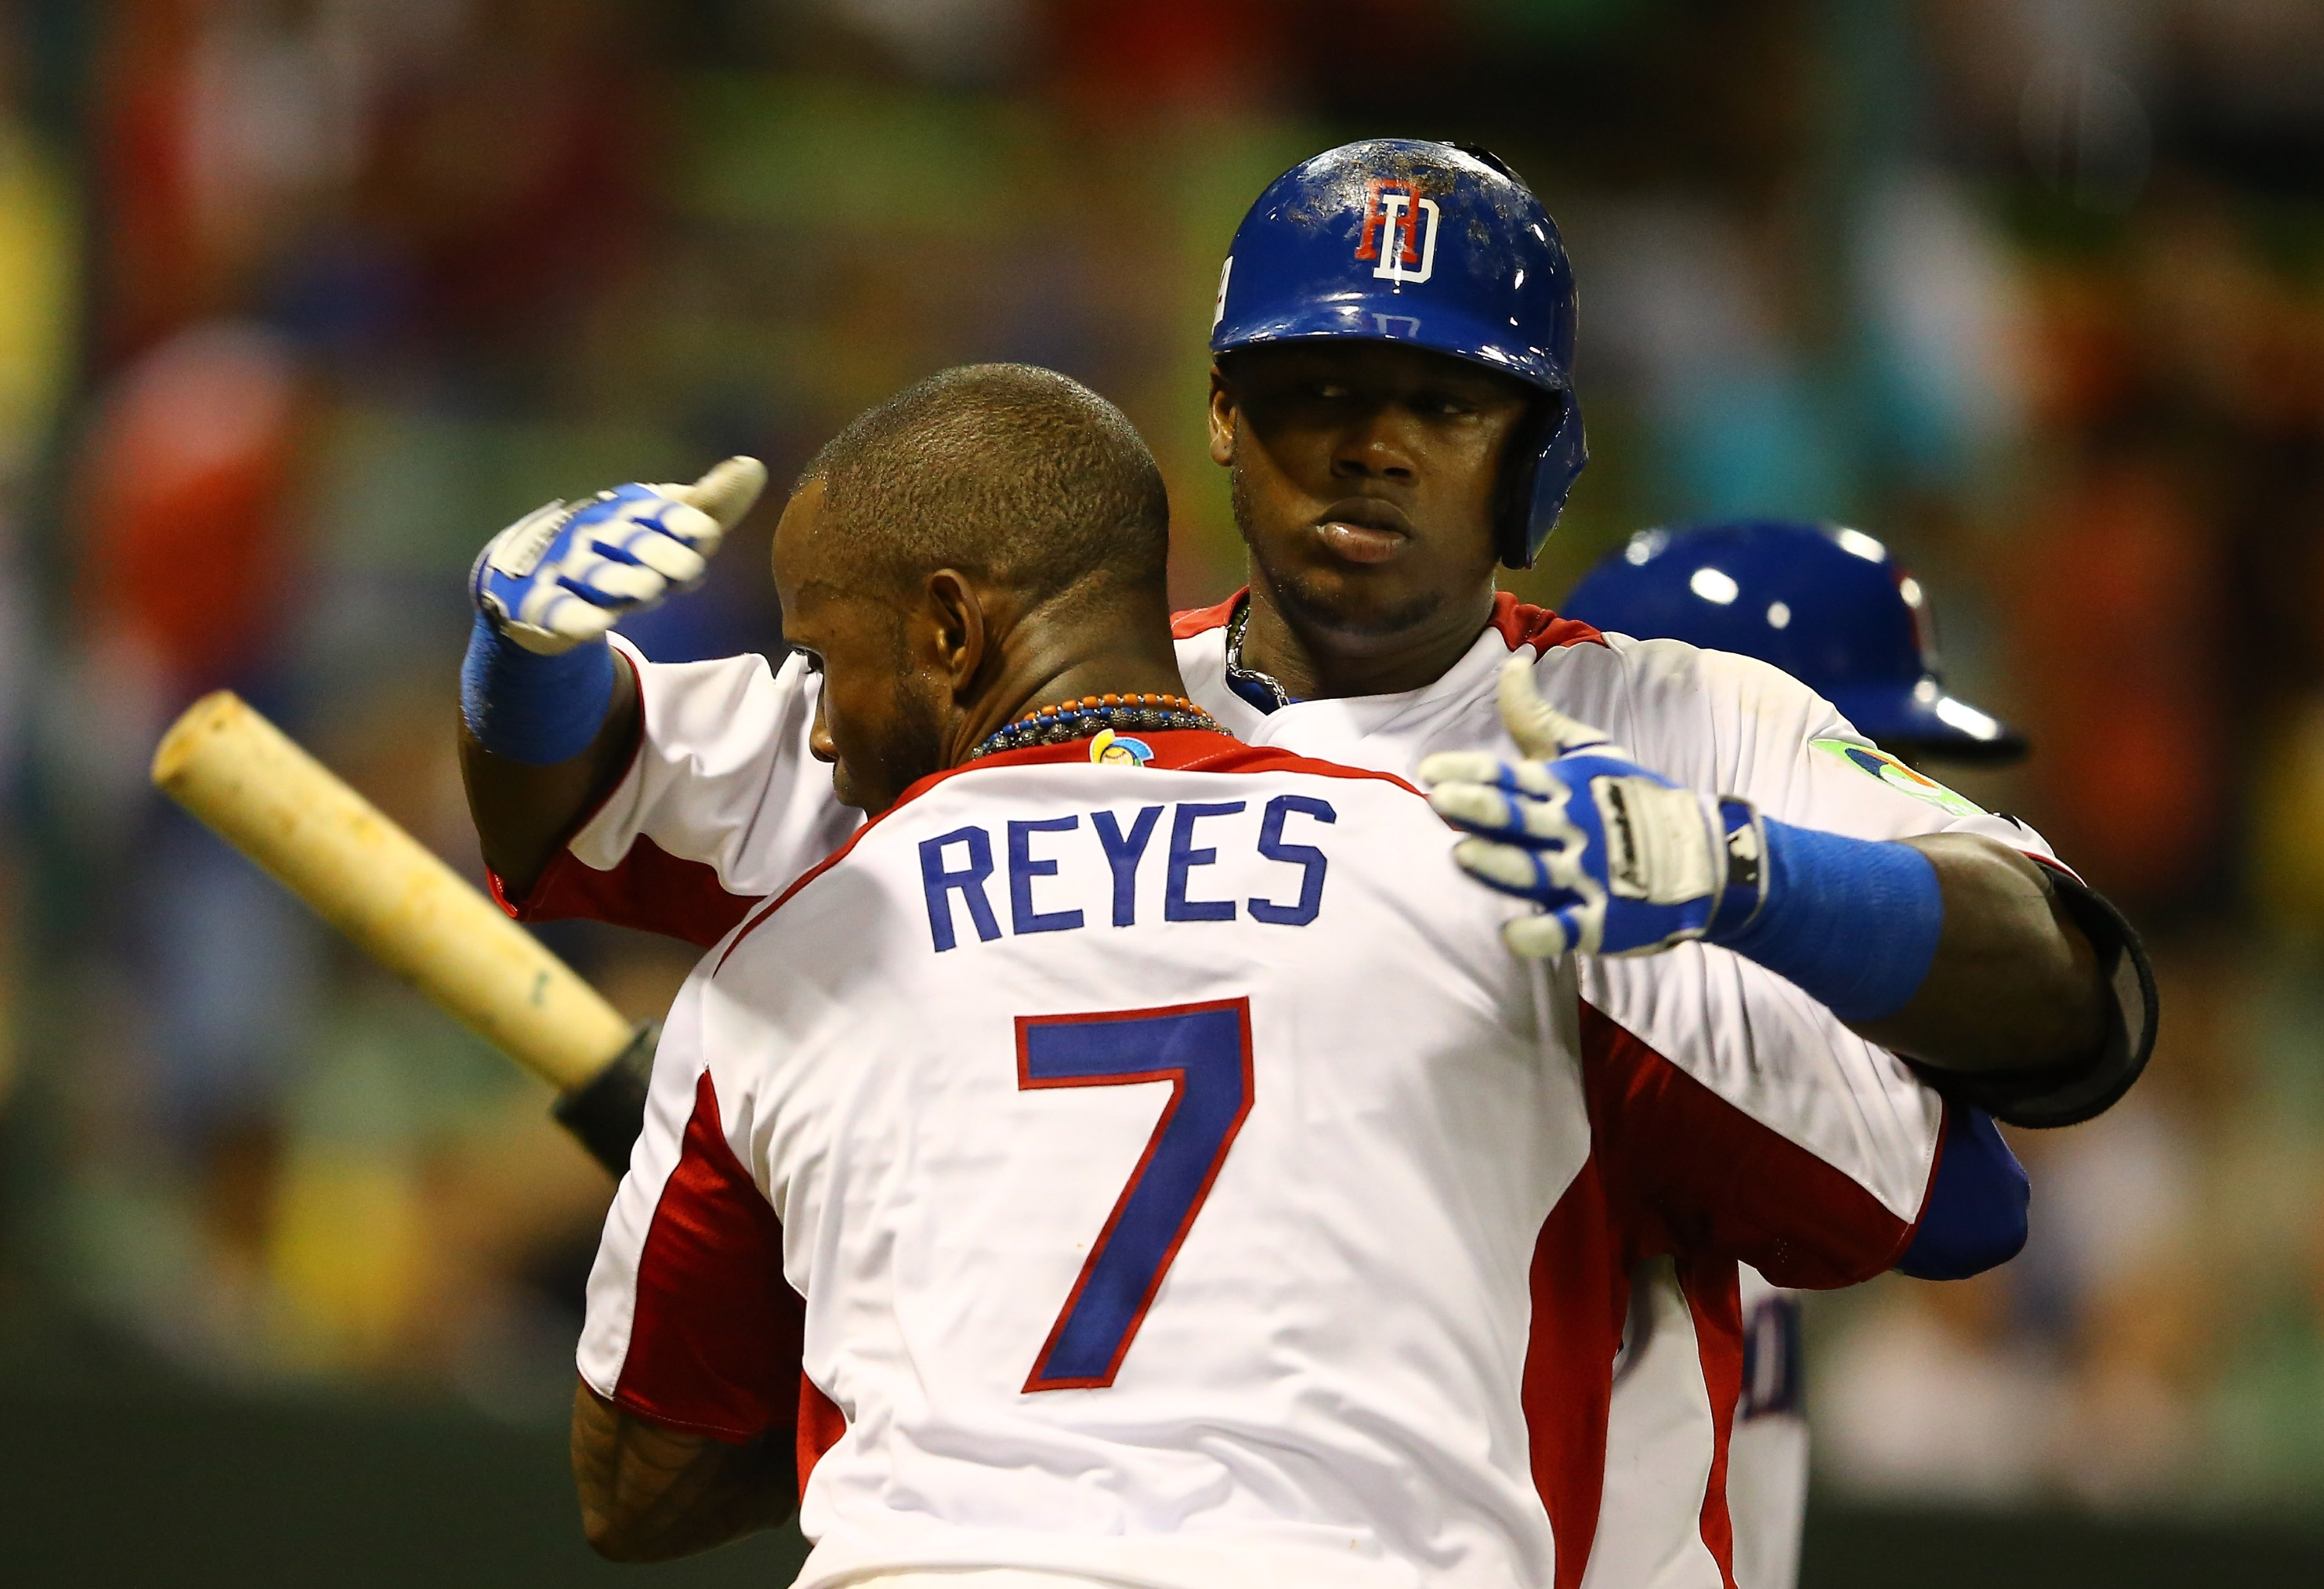 Hanley Ramirez gets a warm welcome from Jose Reyes after hitting a HR on Thursday. (Getty Images)